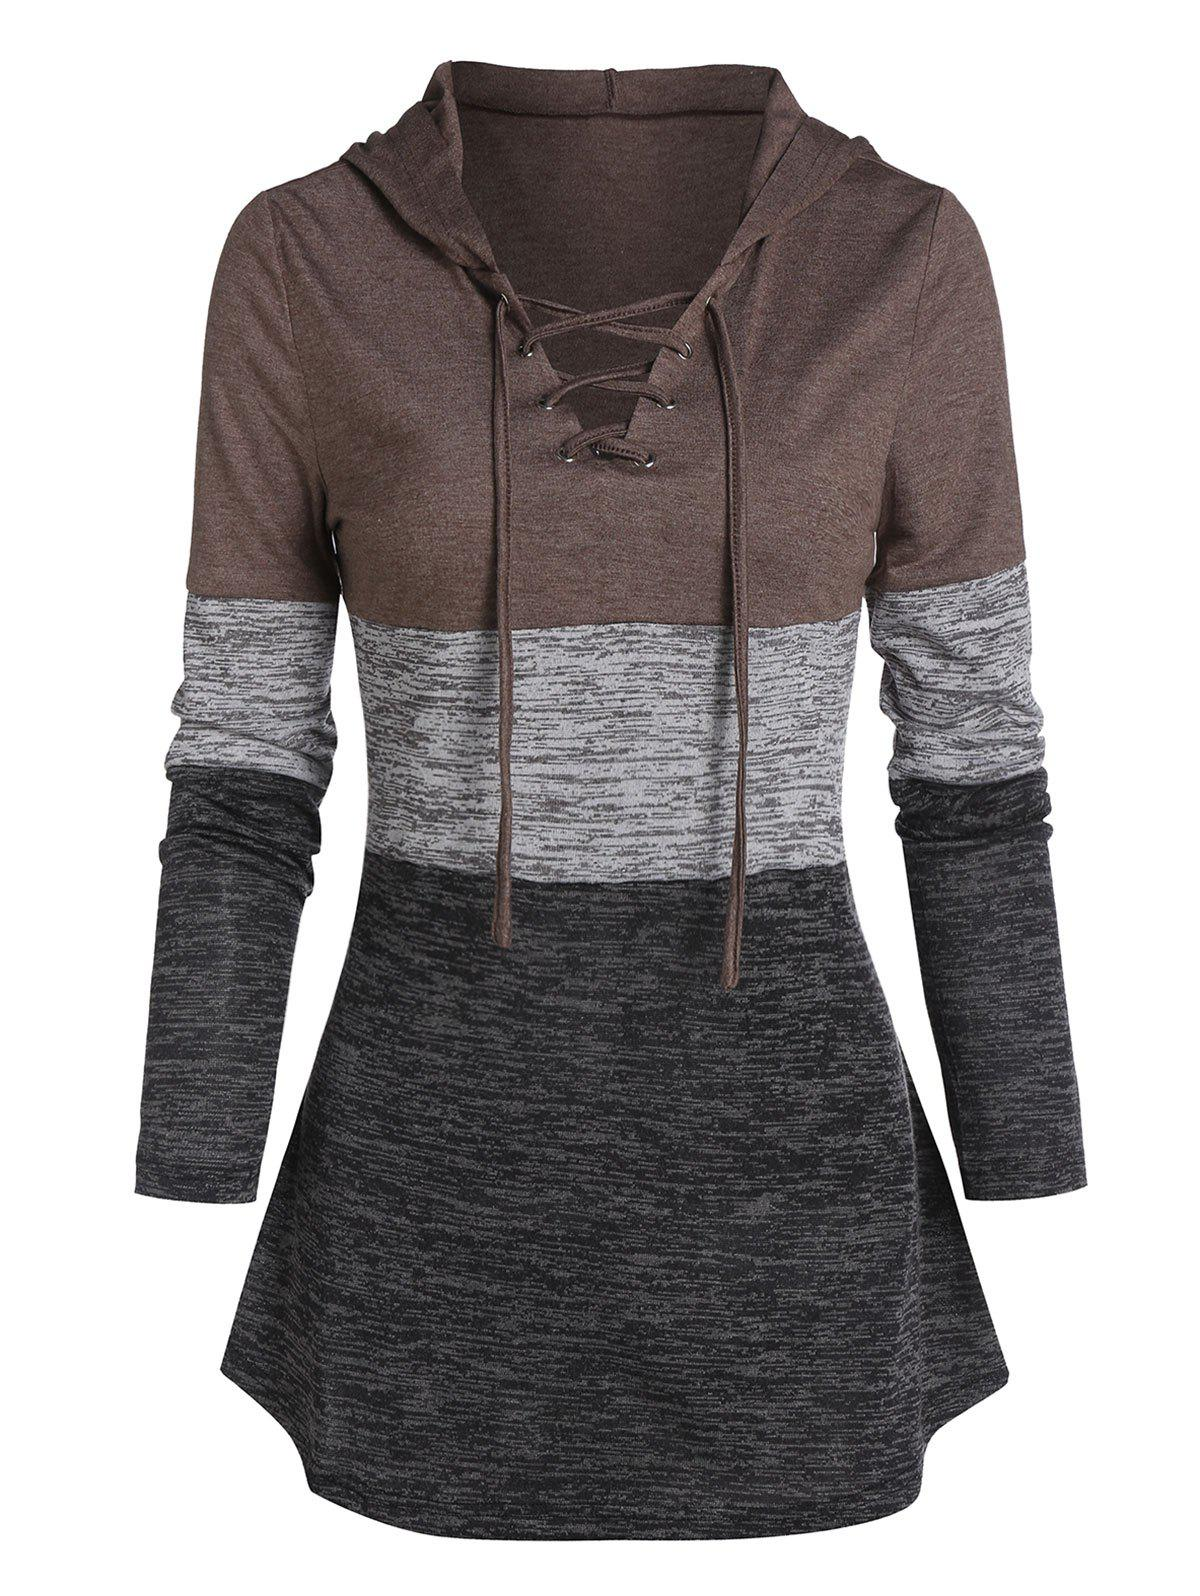 Store Space Dye Print Lace-up Contrast Curved Hem Hoodie